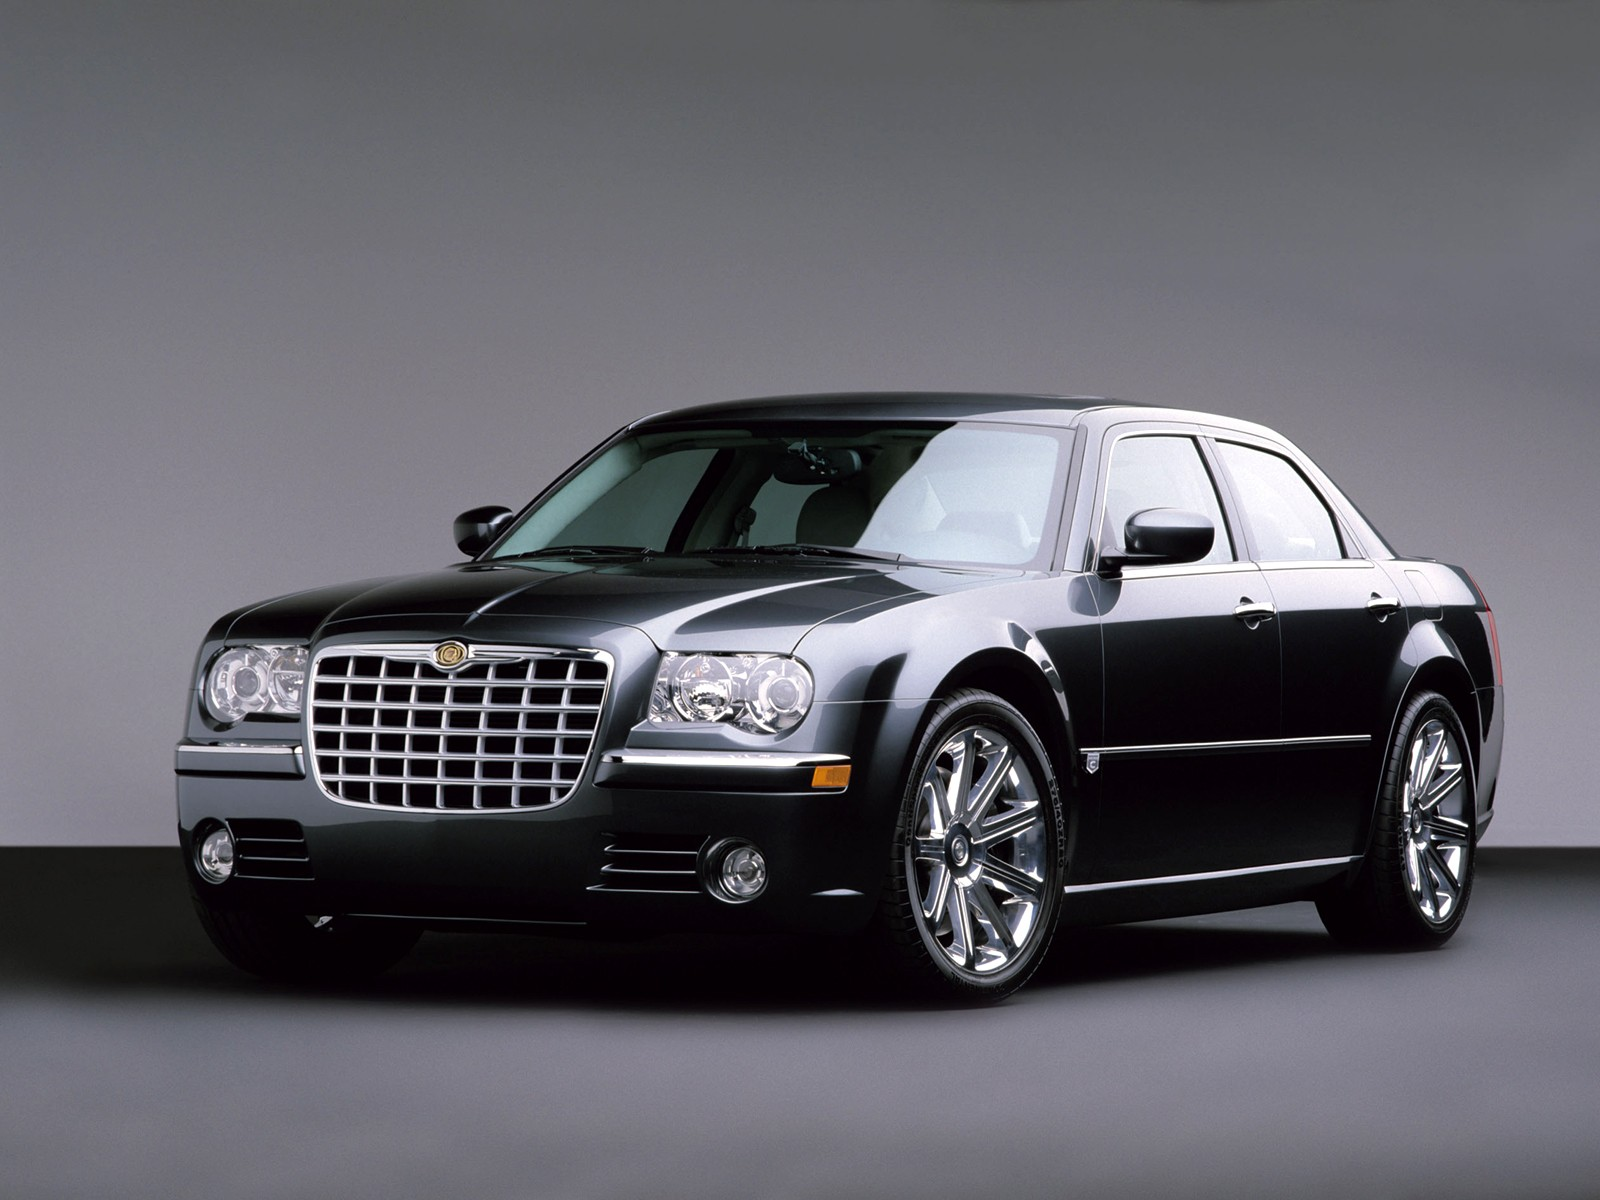 Picture of 2007 Chrysler 300